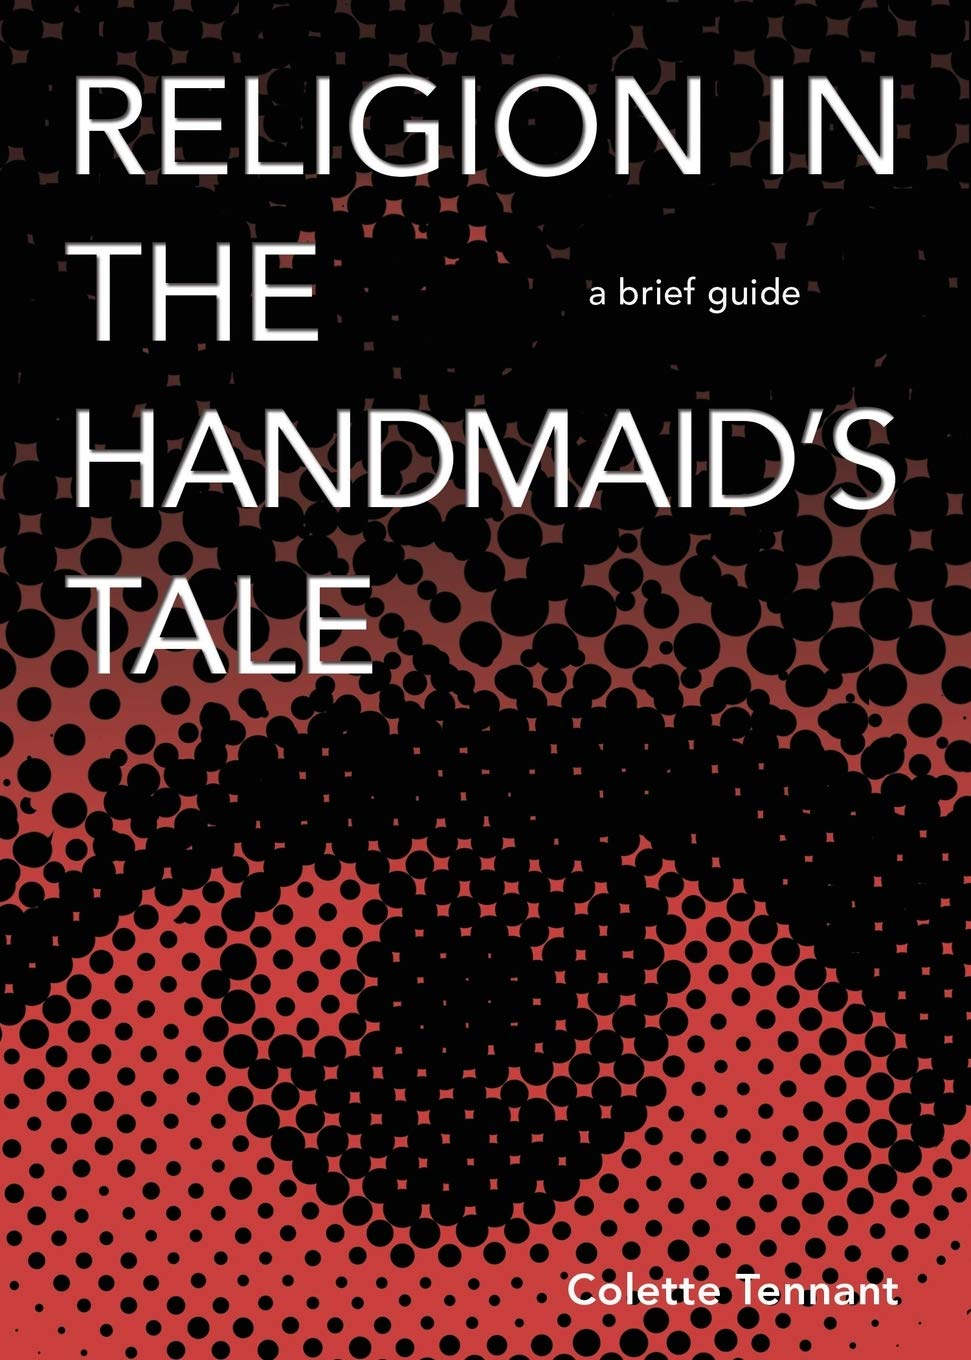 Religion In The Handmaid's Tale  A Brief Guide